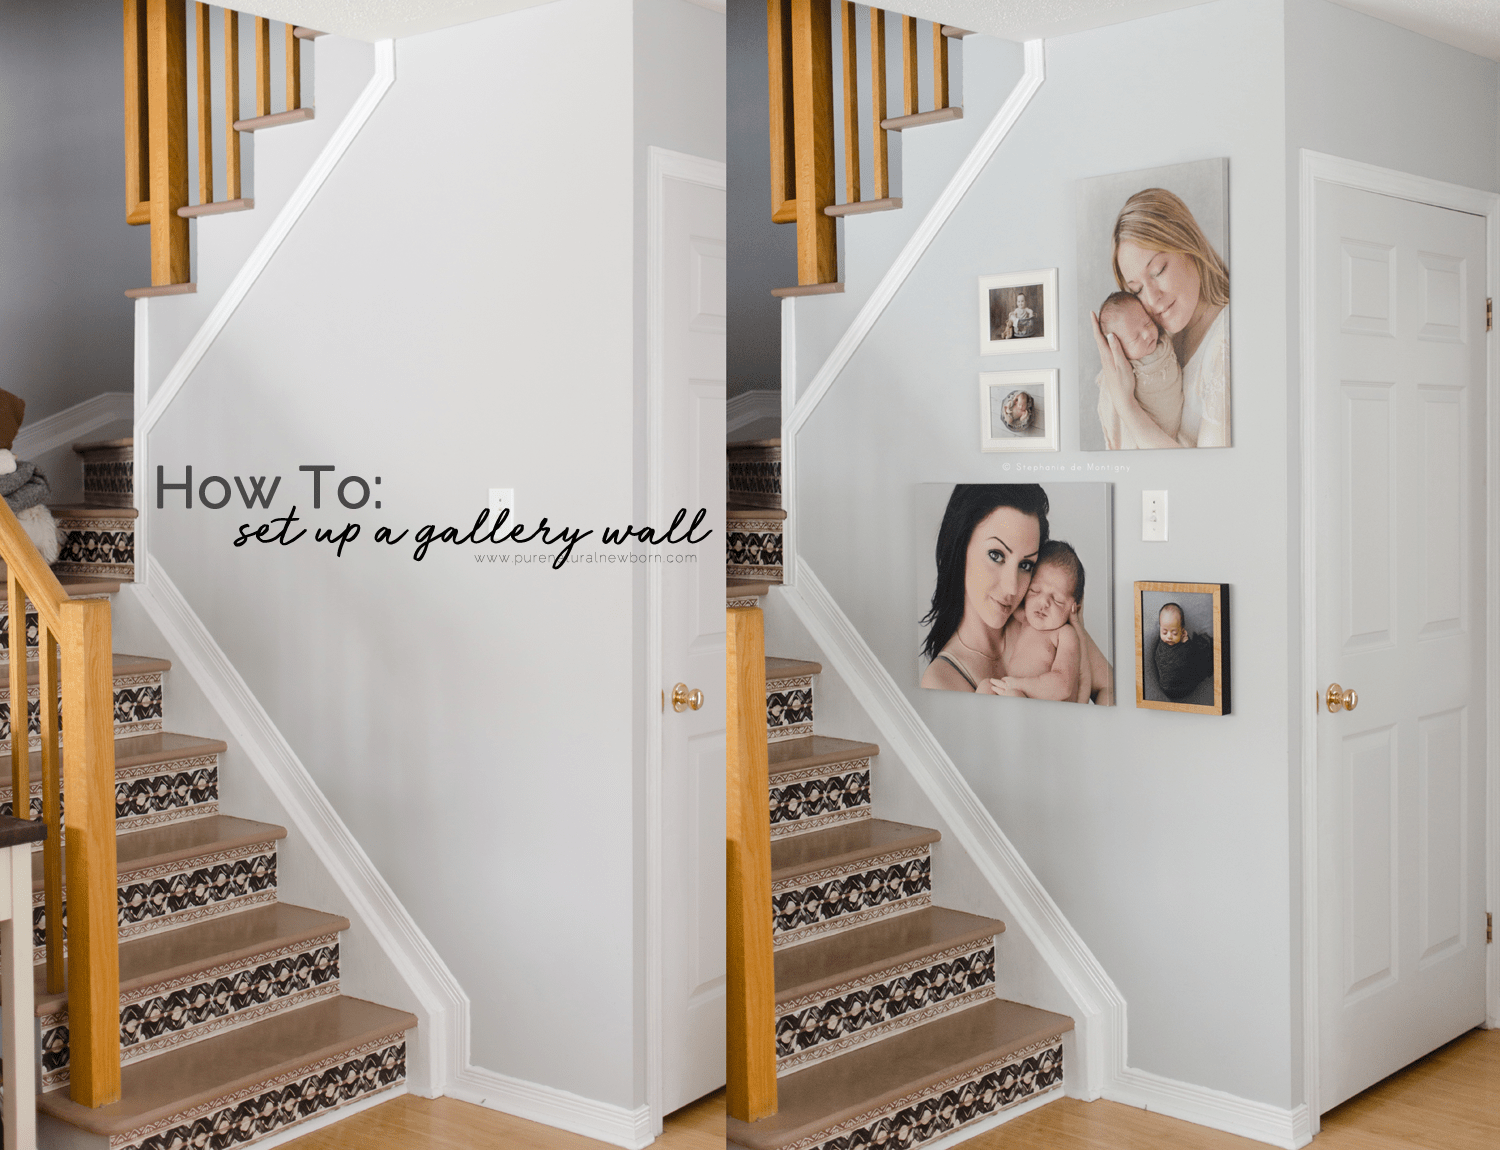 Before & After Stairwell Gallery Wall